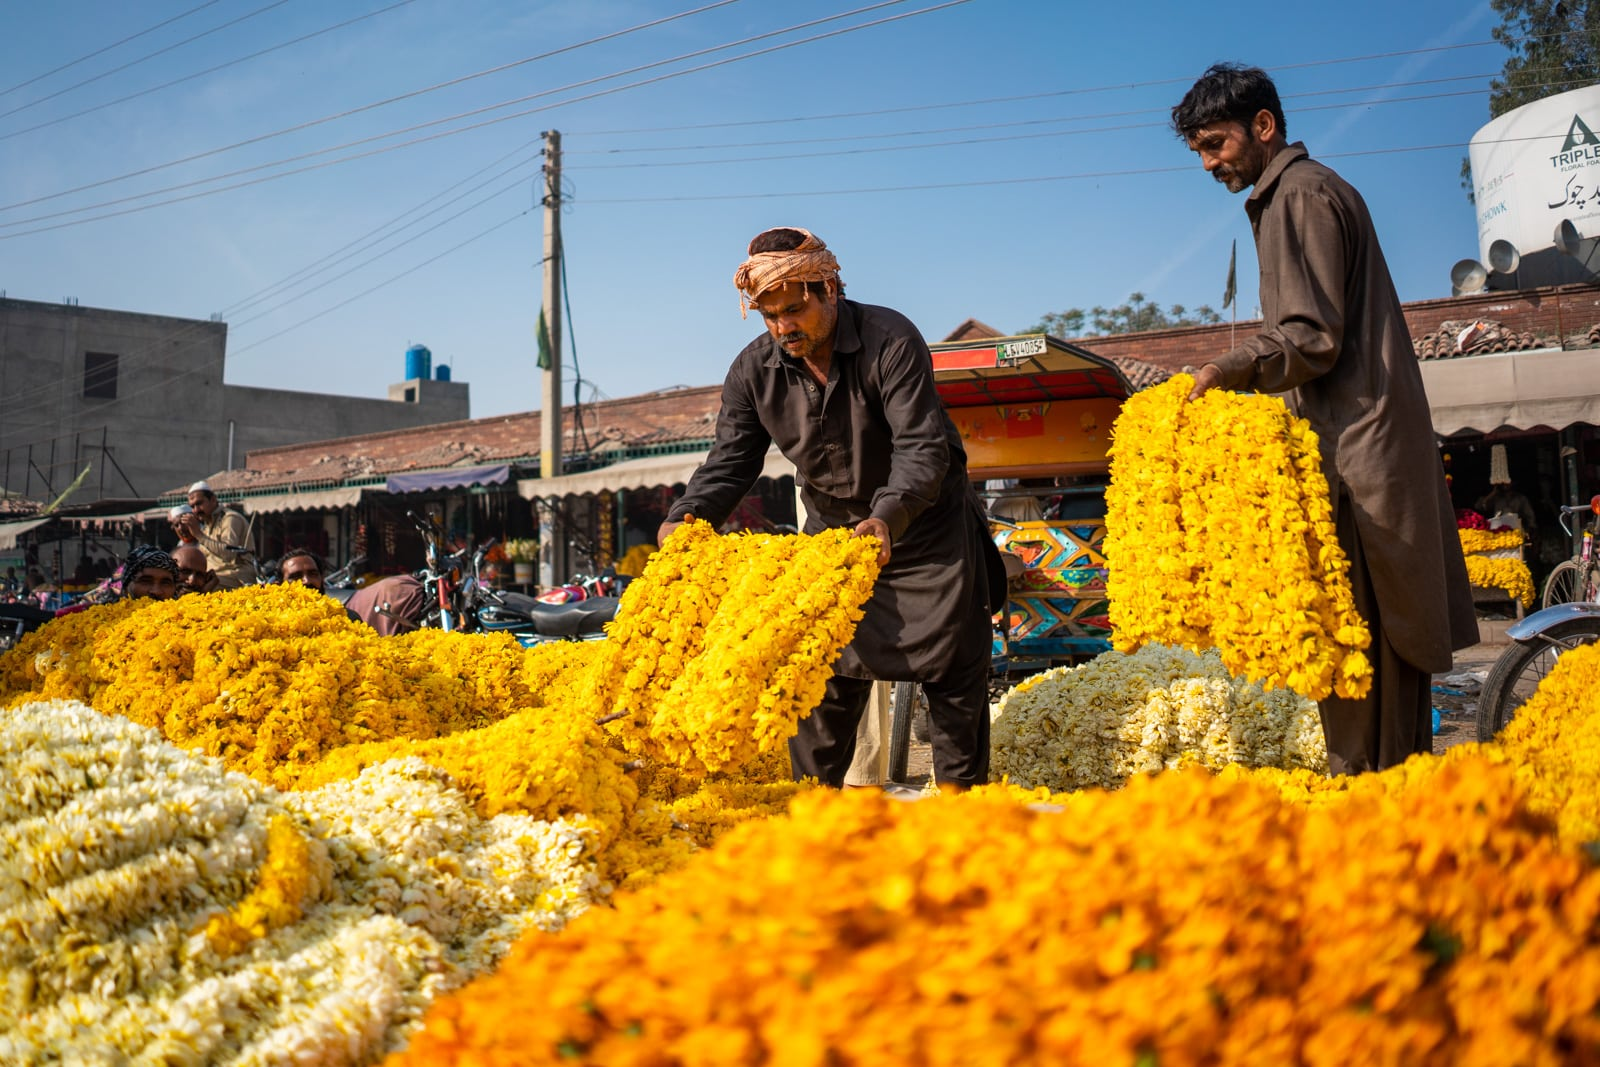 Day trips from Lahore, Pakistan - Vendors laying out yellow flowers at Phool Mandi flower market in Lahore, Pakistan